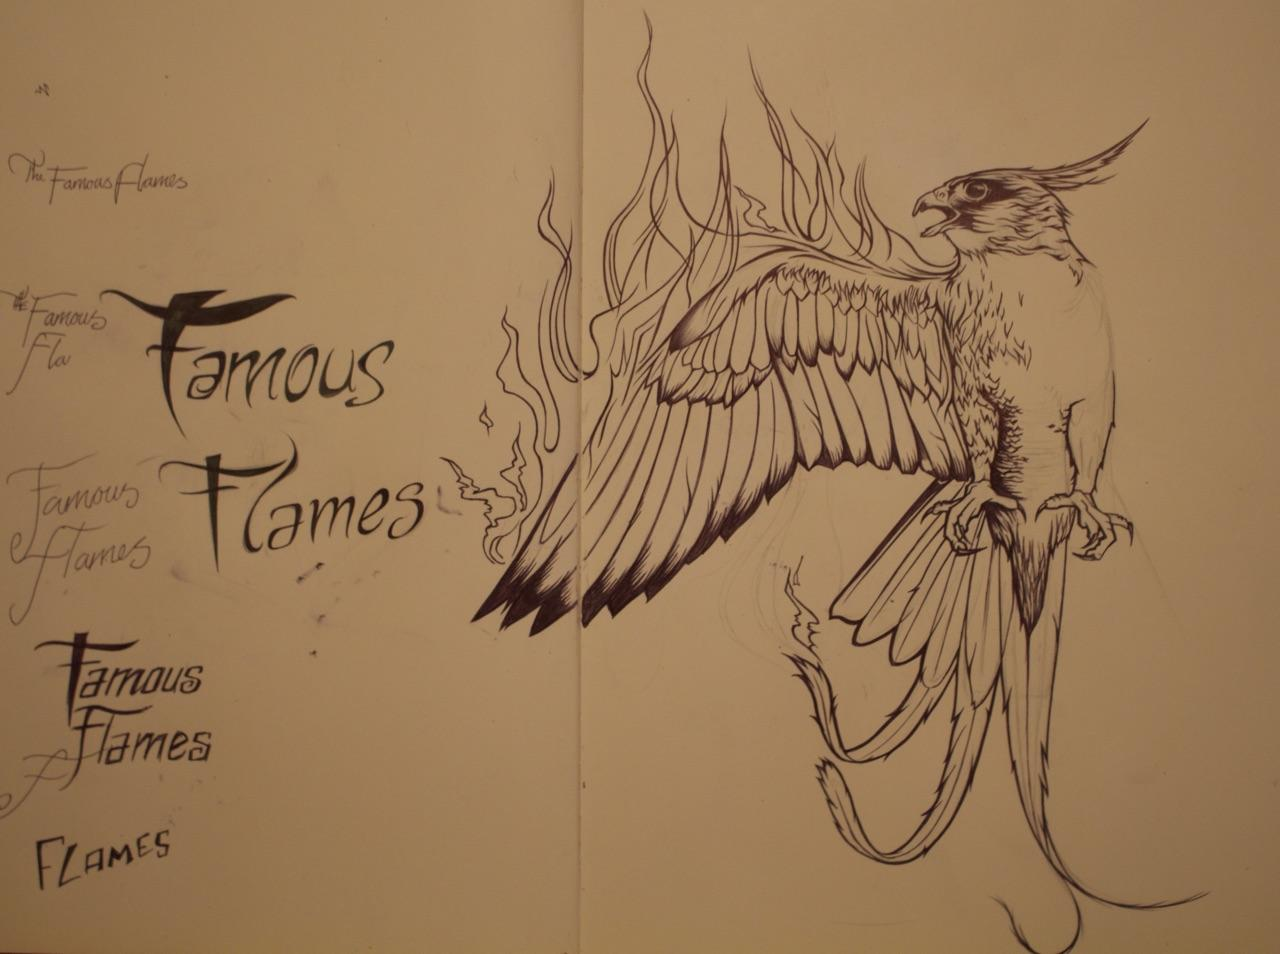 The Famous Flames Poster | Skillshare Projects